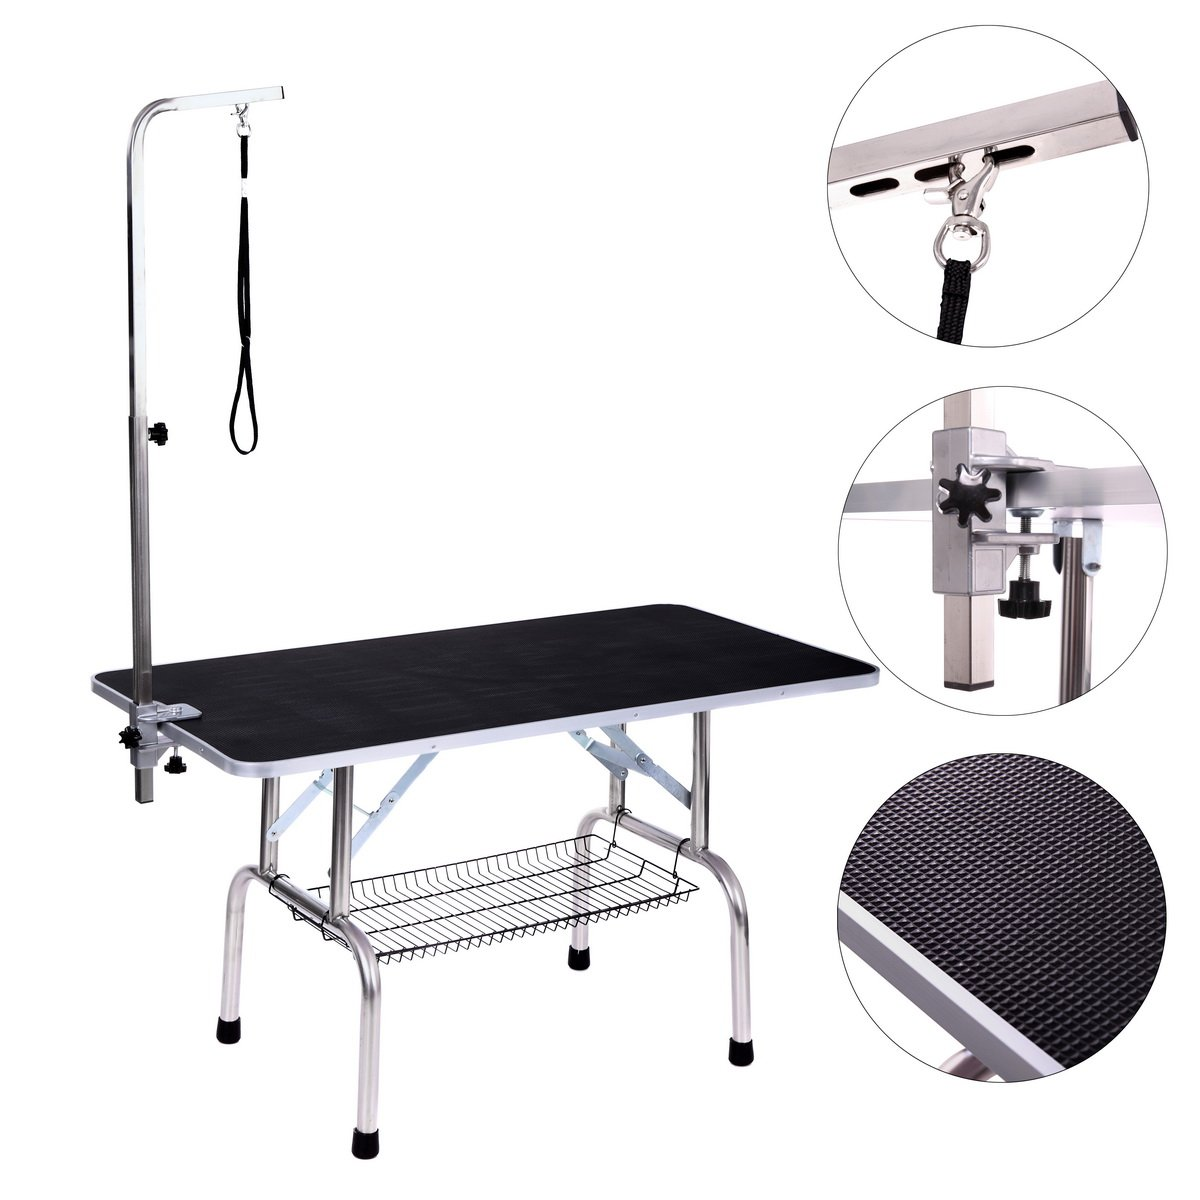 Dog Grooming Table, Adjustable Arm and Clamp for Pet, Grooming Table with Grooming Loop (48'' x 24'')